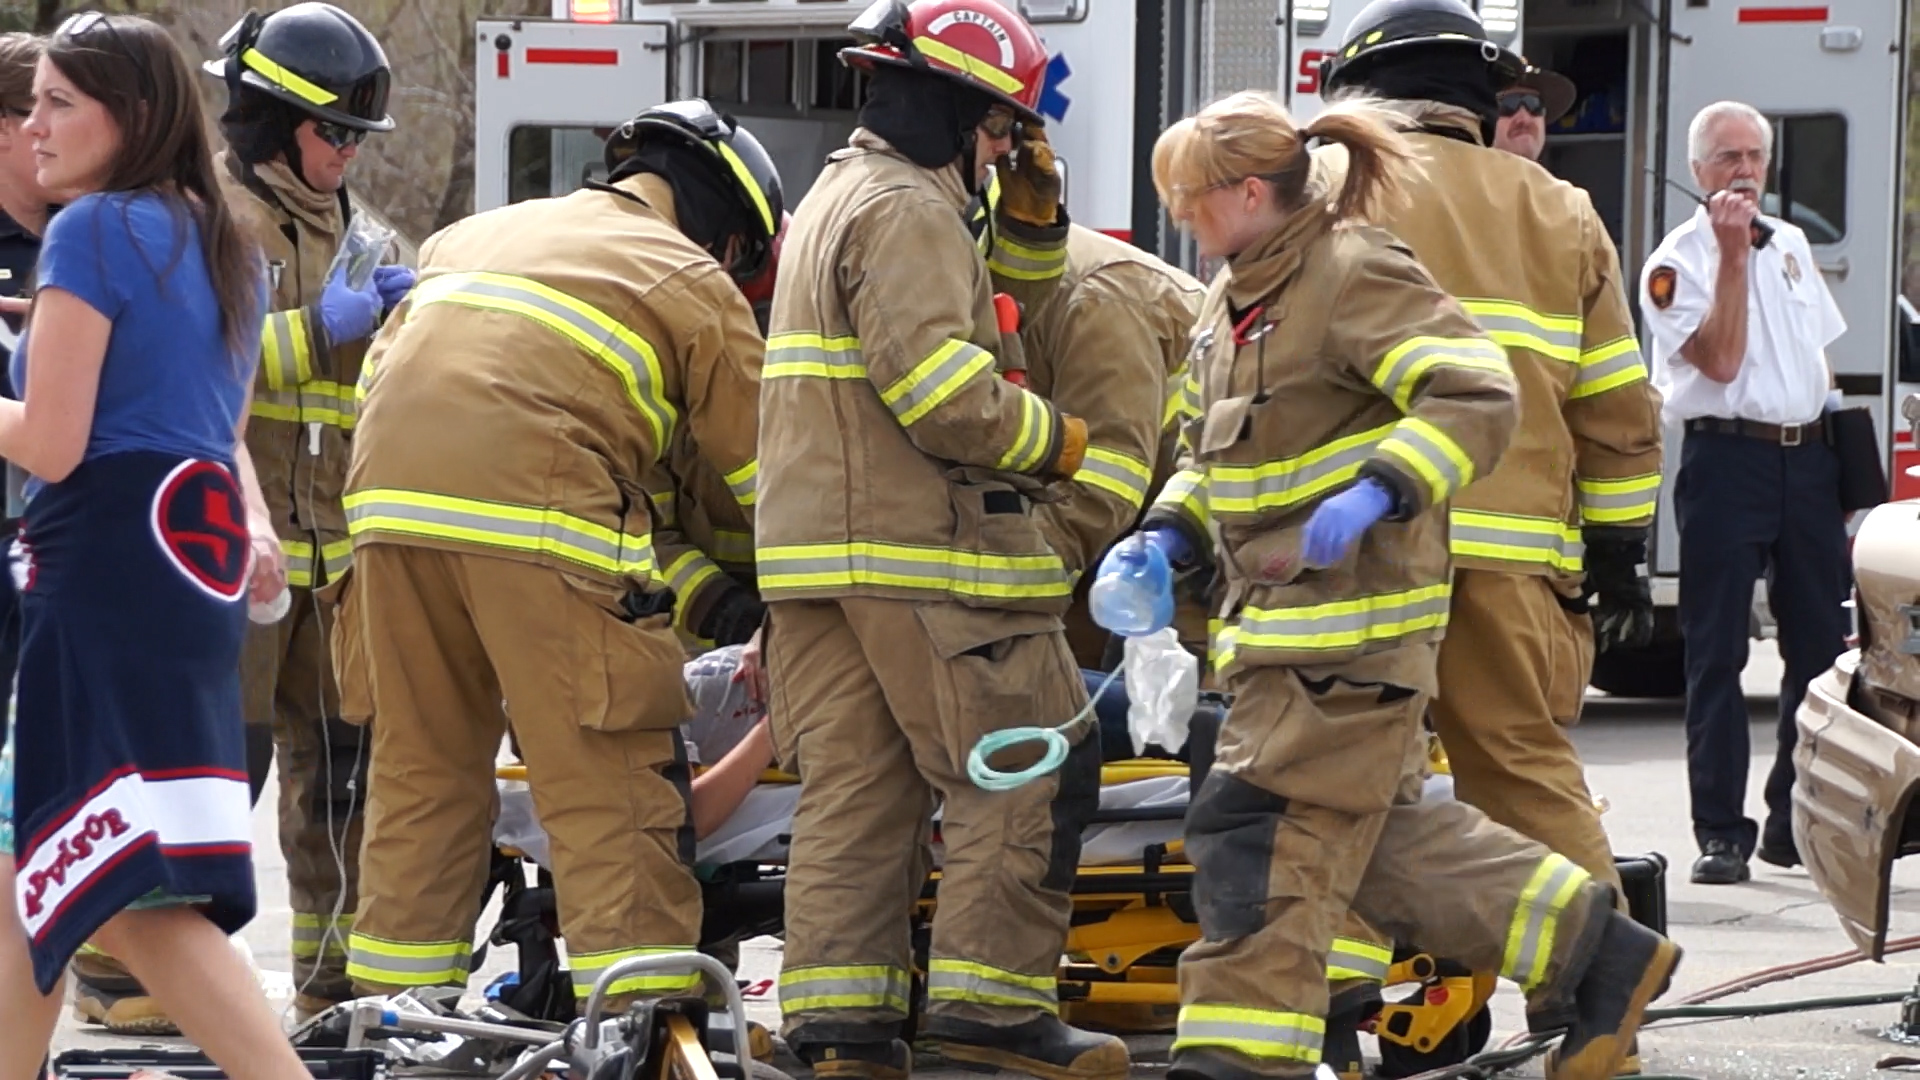 EMTs surround a mock crash victim on a stretcher. UHP, Springville PD, SPringville Fire and Rescue, Utah County Sheriff's Office and Lifeflight teamed up to conduct a mock crash at Springville High School on April 10th.